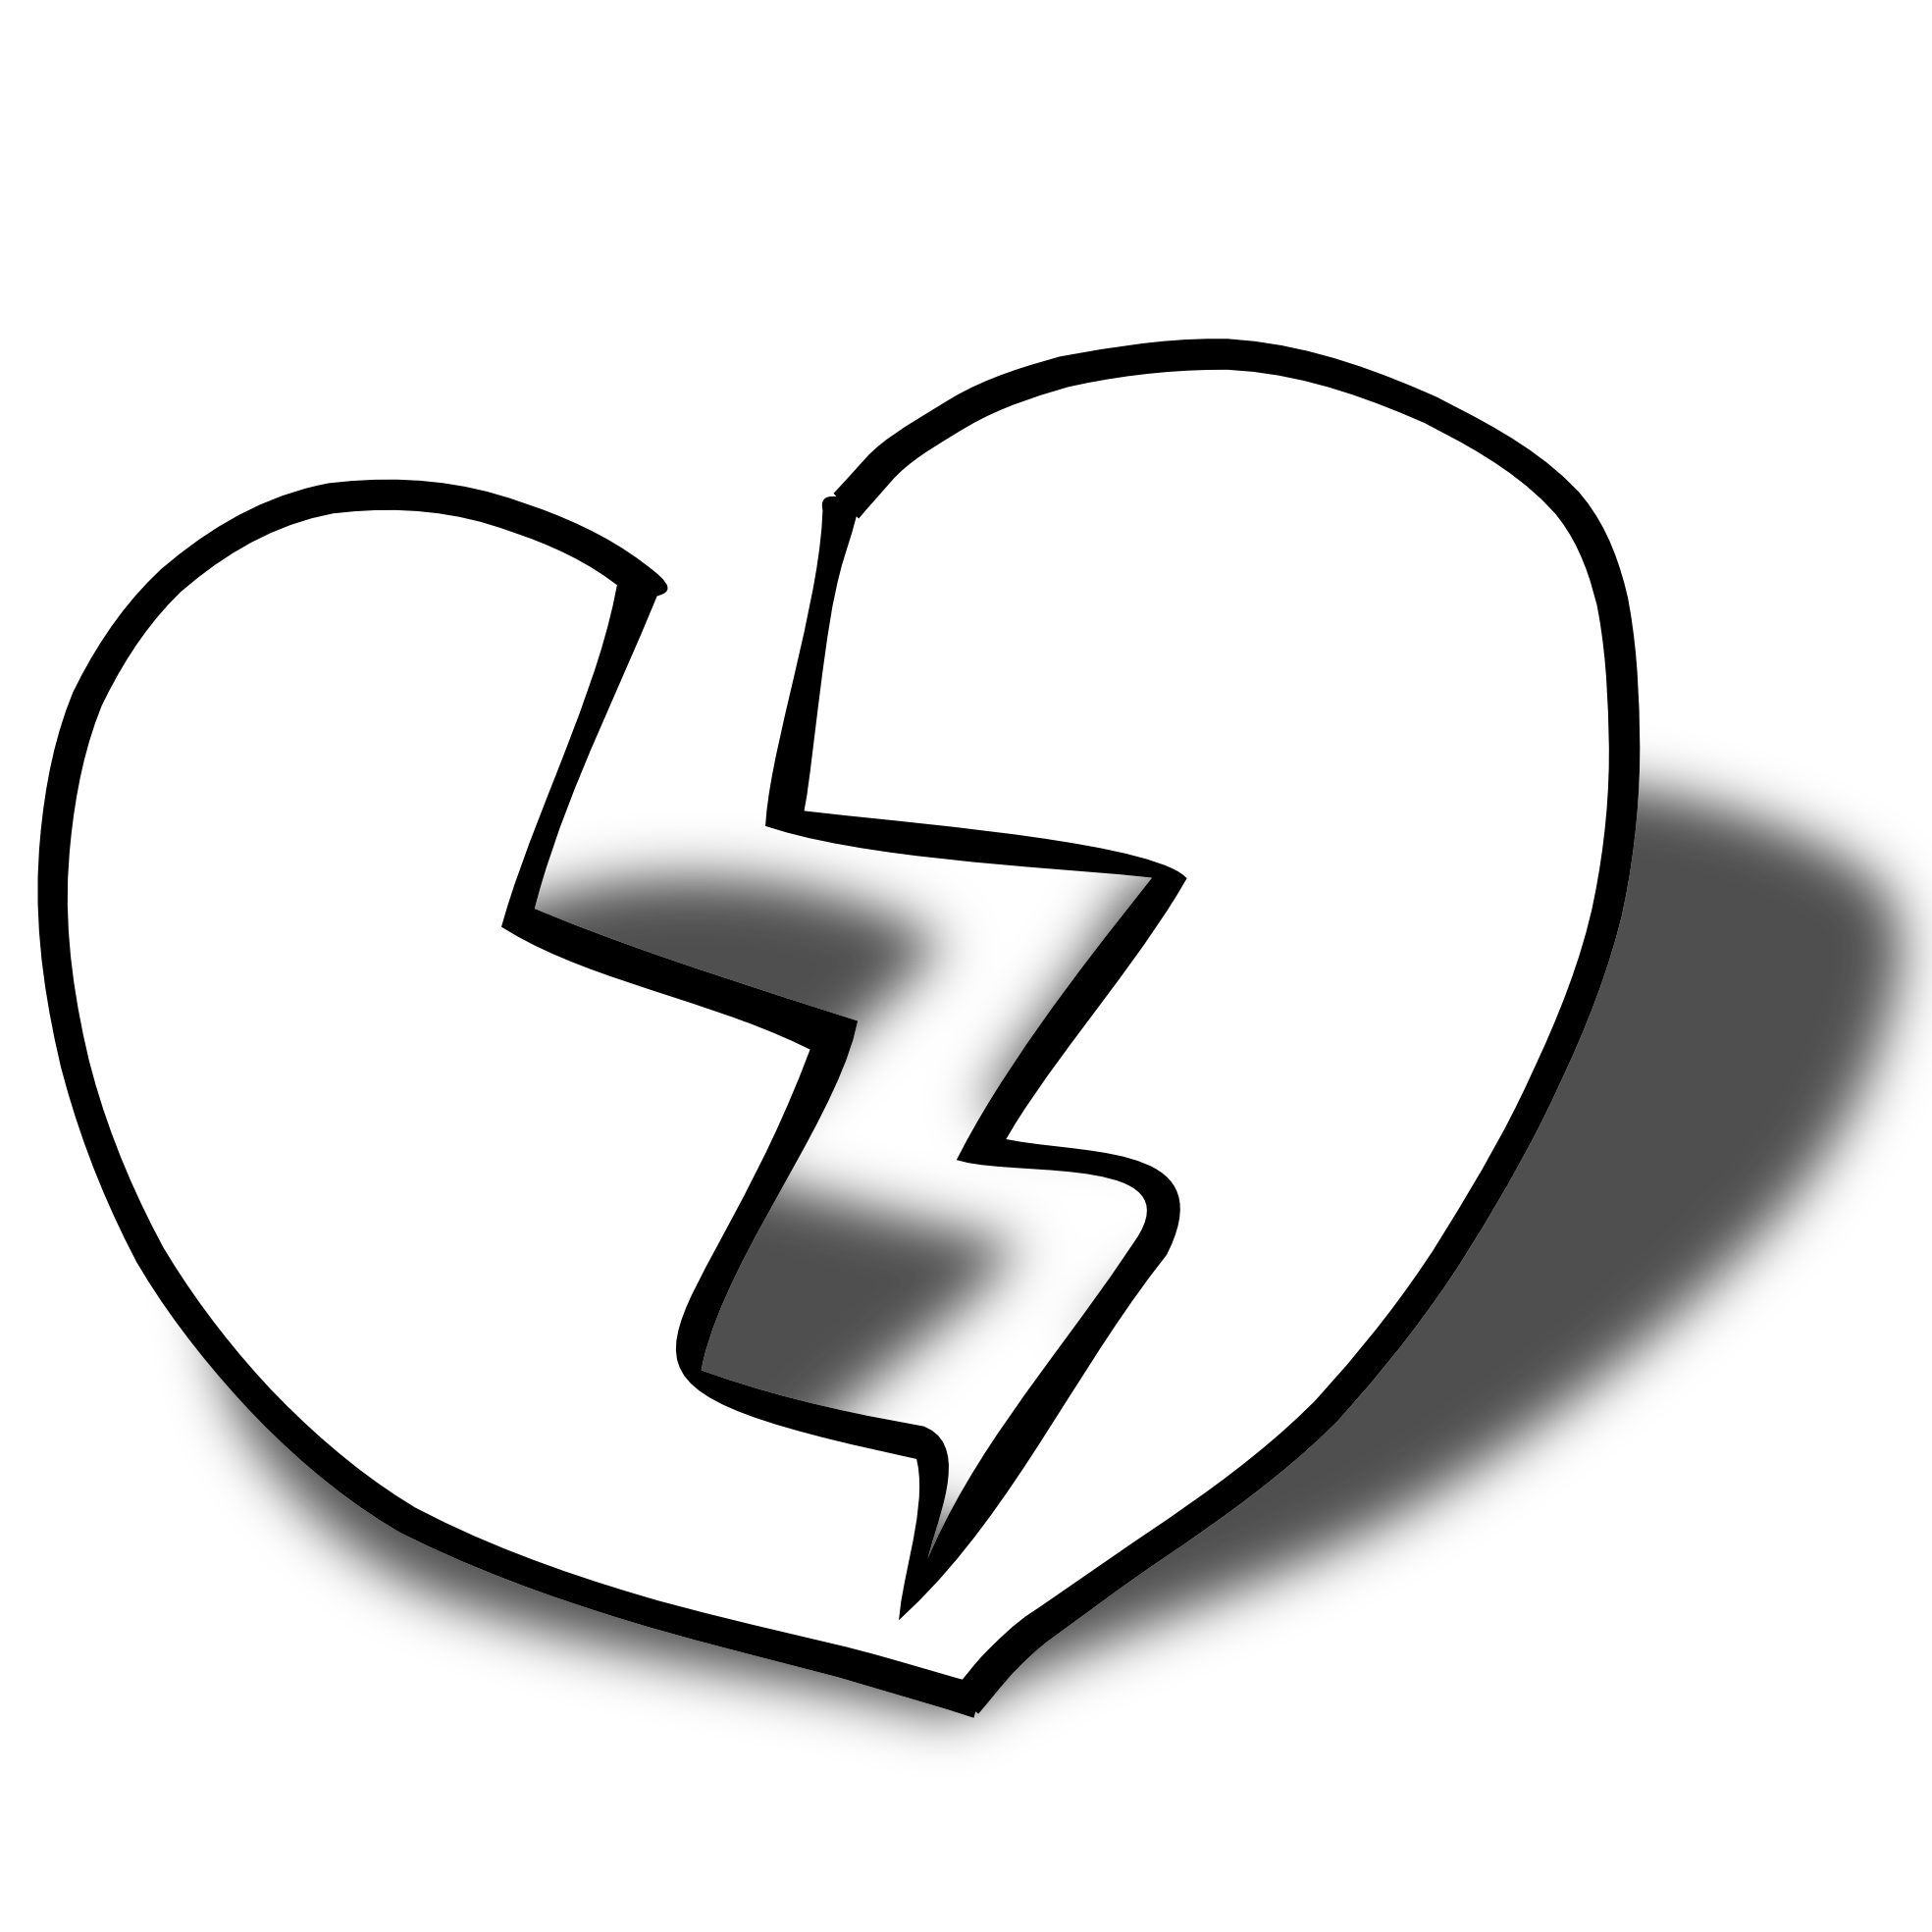 Free black and white. Heart clipart science